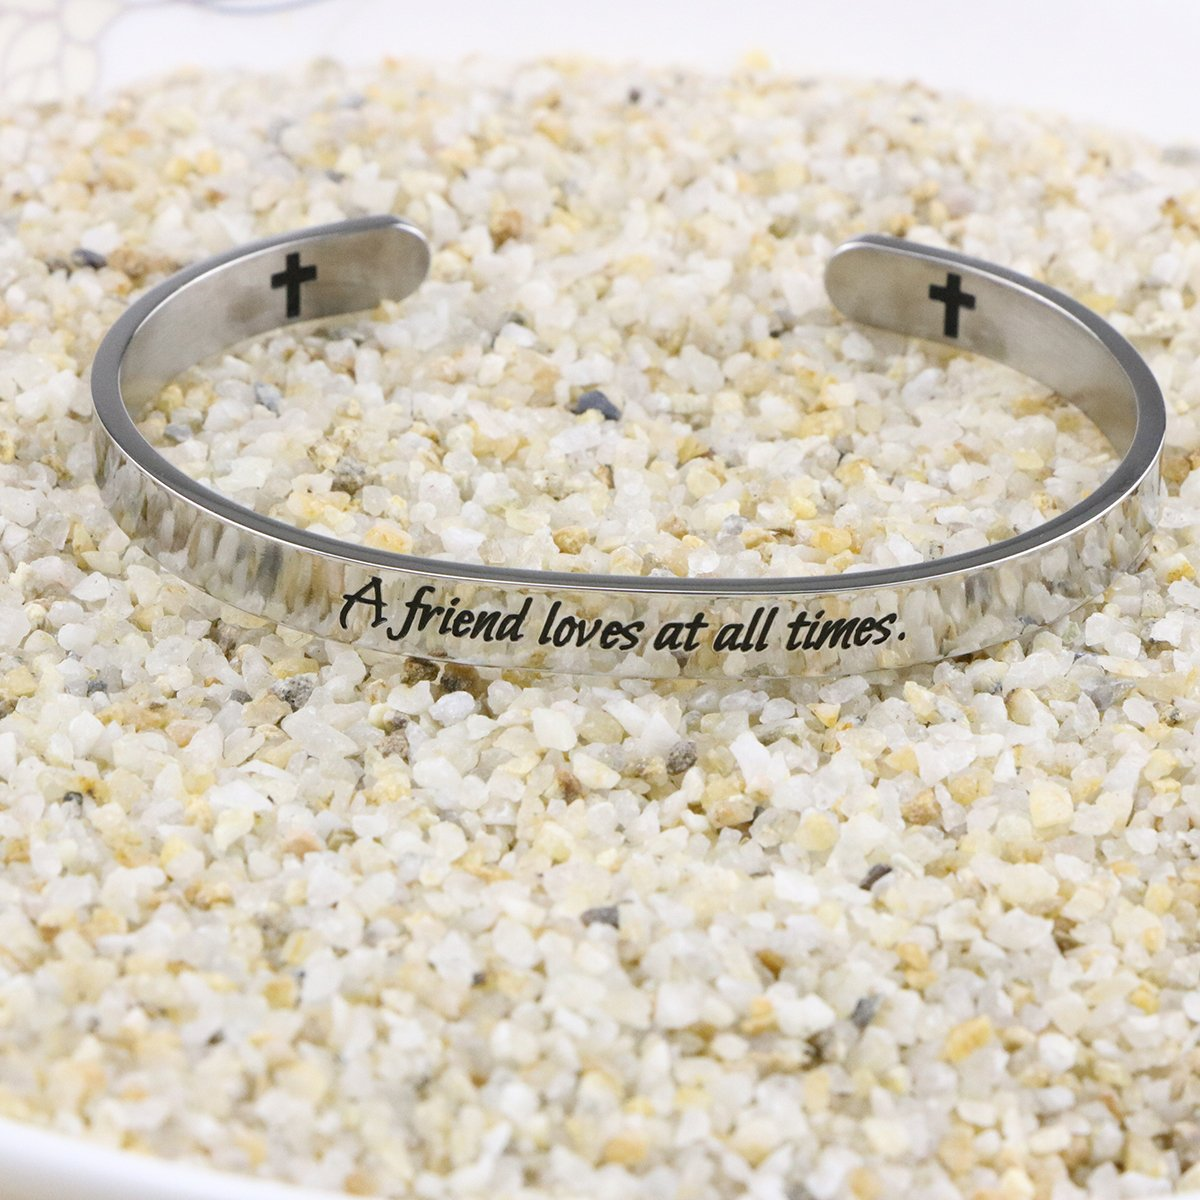 Yiyang Friendship Bracelets Chirstian Jewelry Positive Cuff Bangle Memorial Gift Proverb Engraved A Friend Loves at All Times by Yiyang (Image #5)